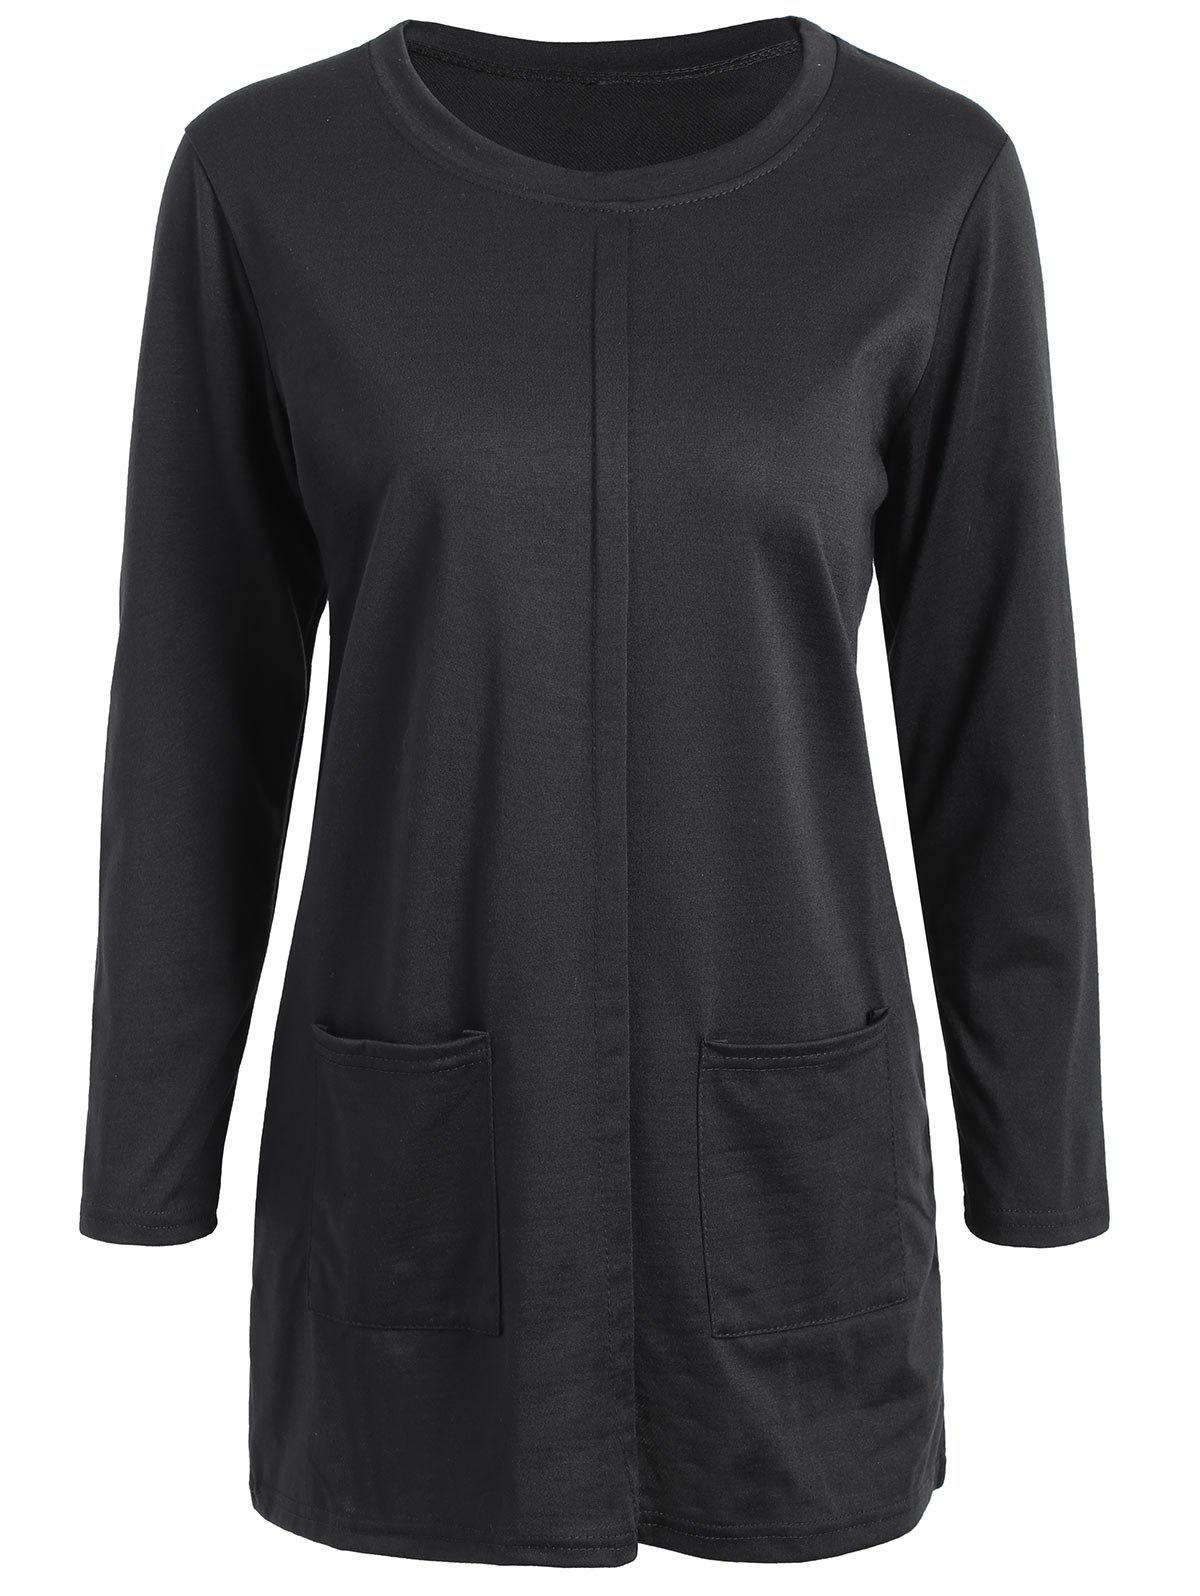 Plus Size Pocket Longline Tee - BLACK 5XL